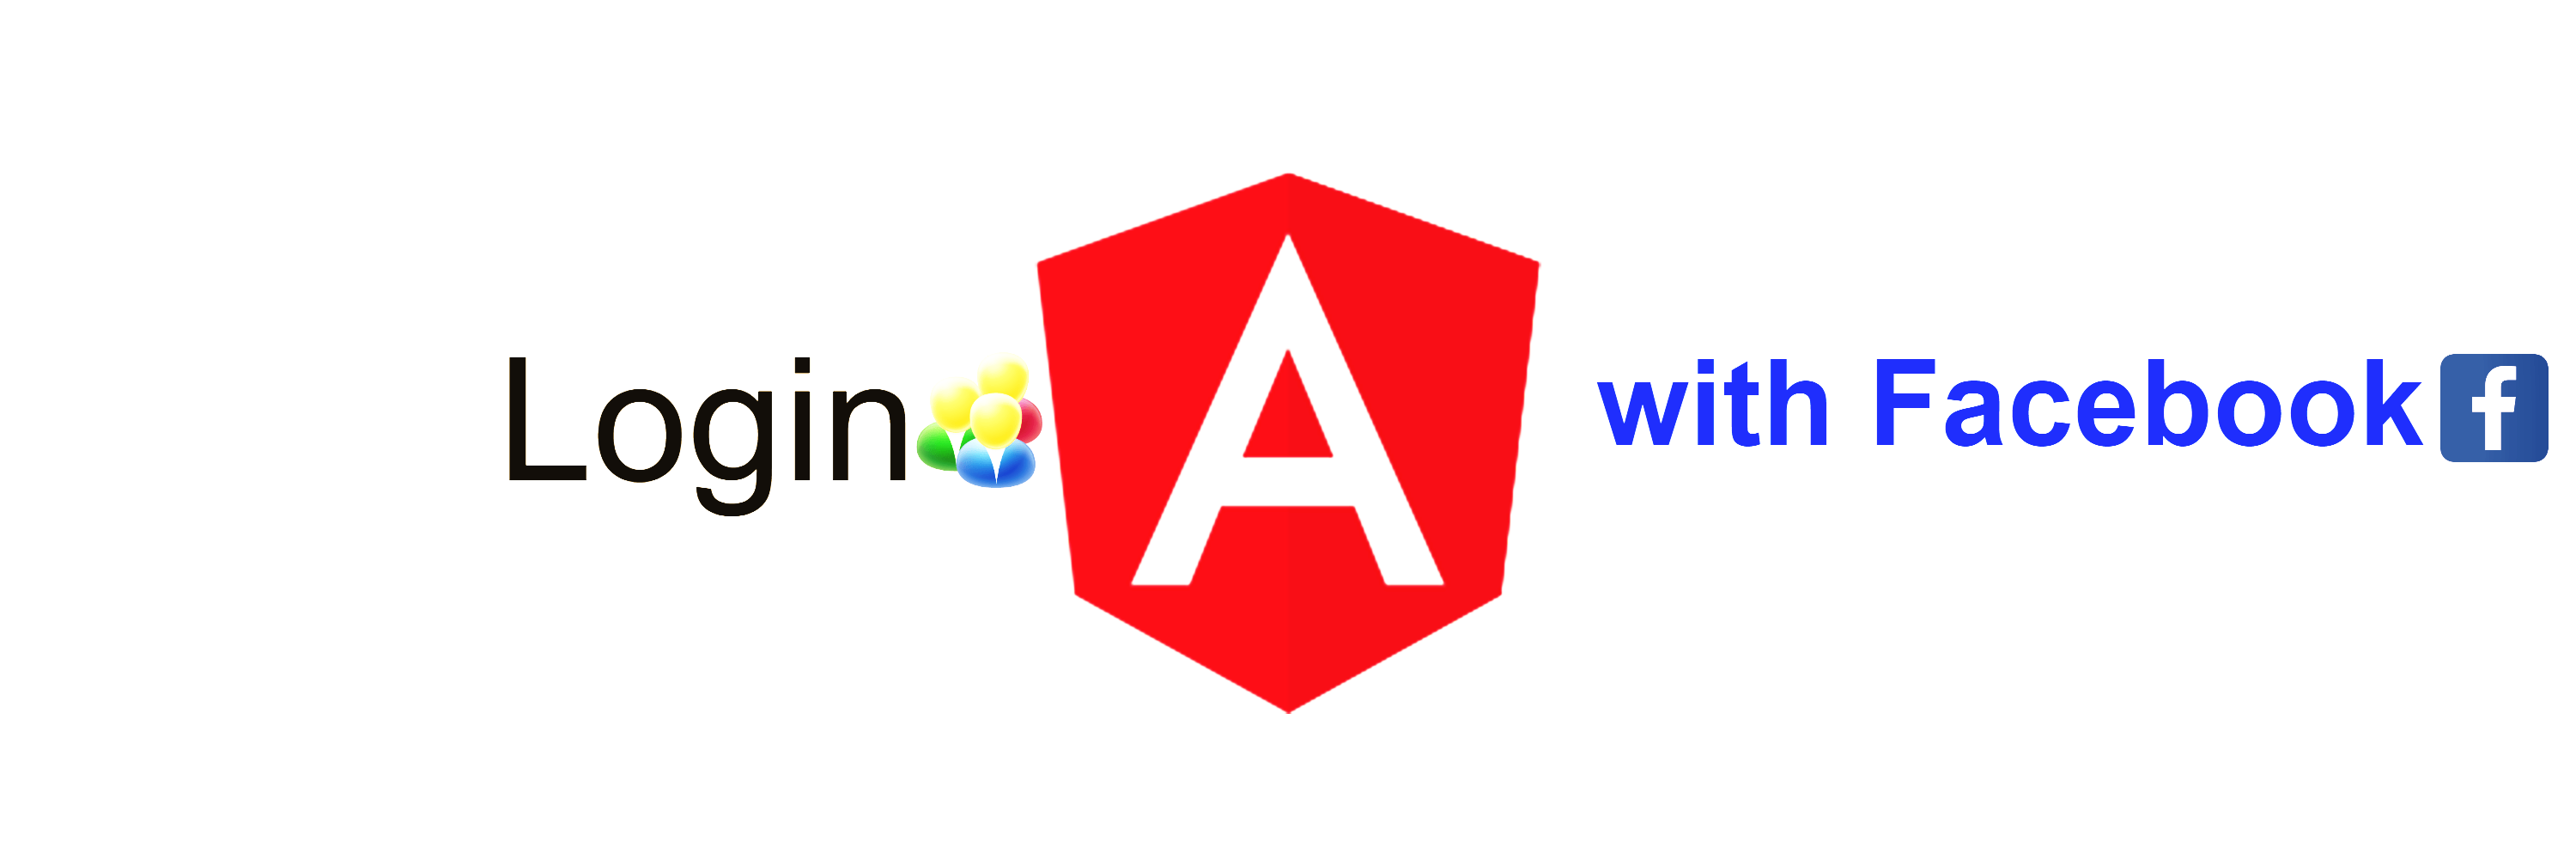 How to login into Angular 9 application with Facebook?